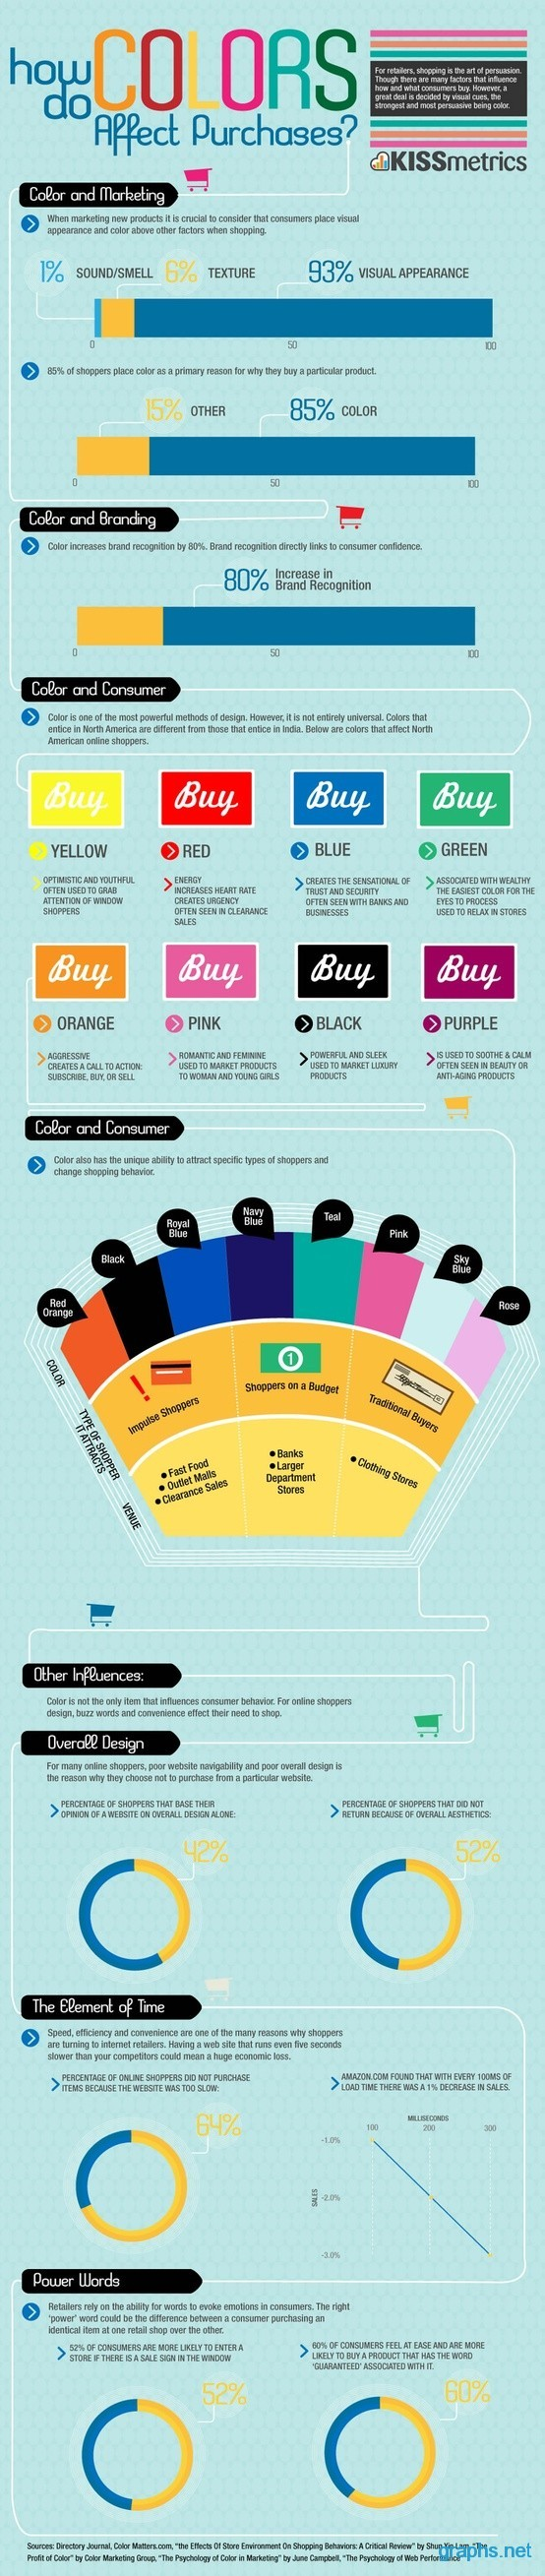 Effects of Colors on Purchases